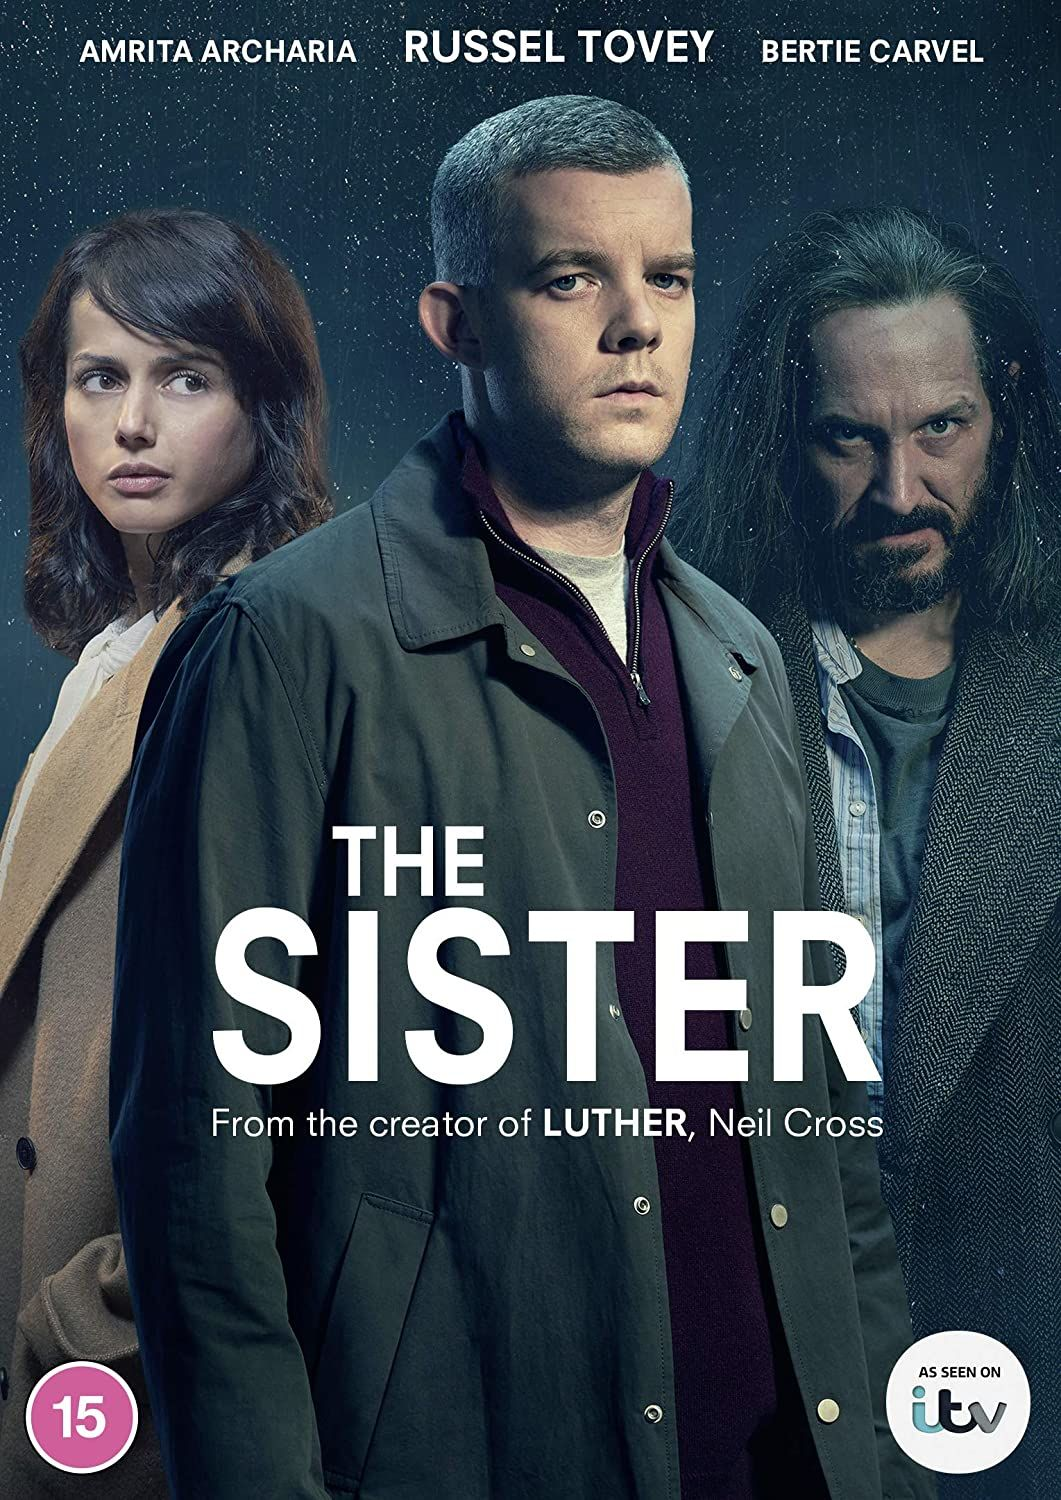 The Sister - Season 1 Episode 1